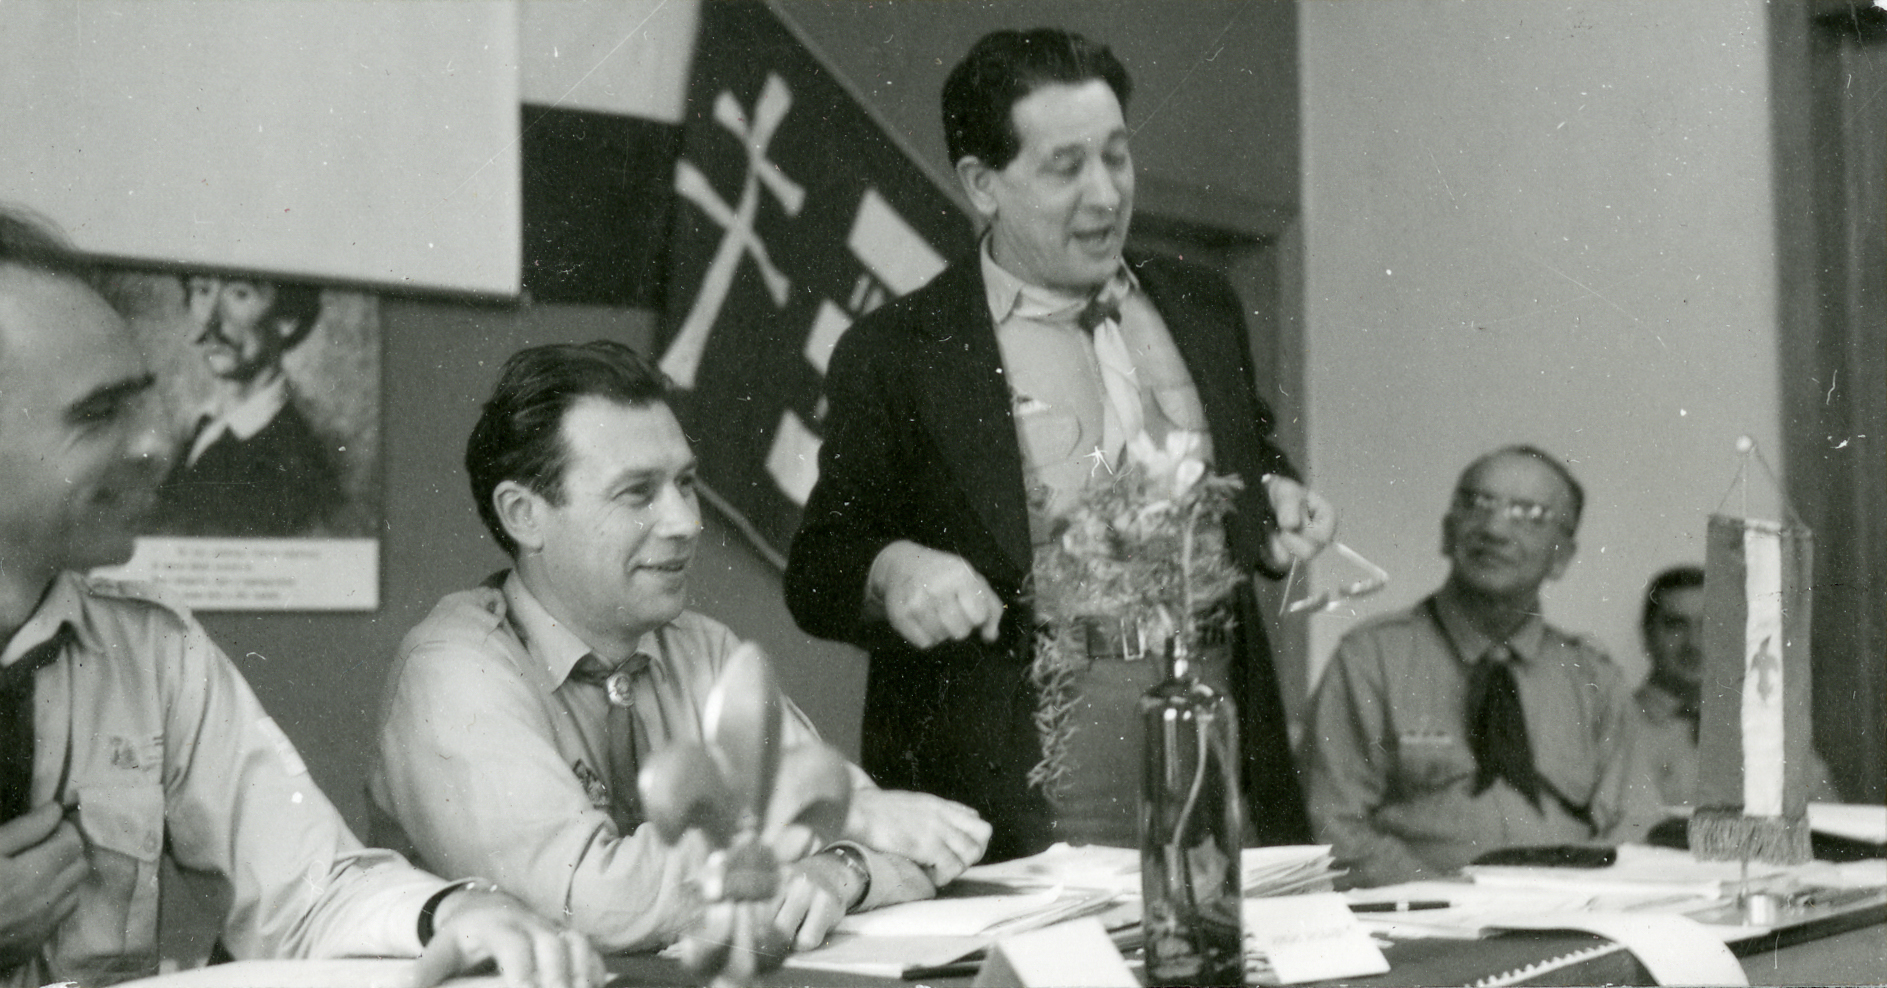 http://files.hungarianarchives.org/hungarianarchives/KMCSSZ_EUROPA_A3/KMCSSZ_A3.282.jpg